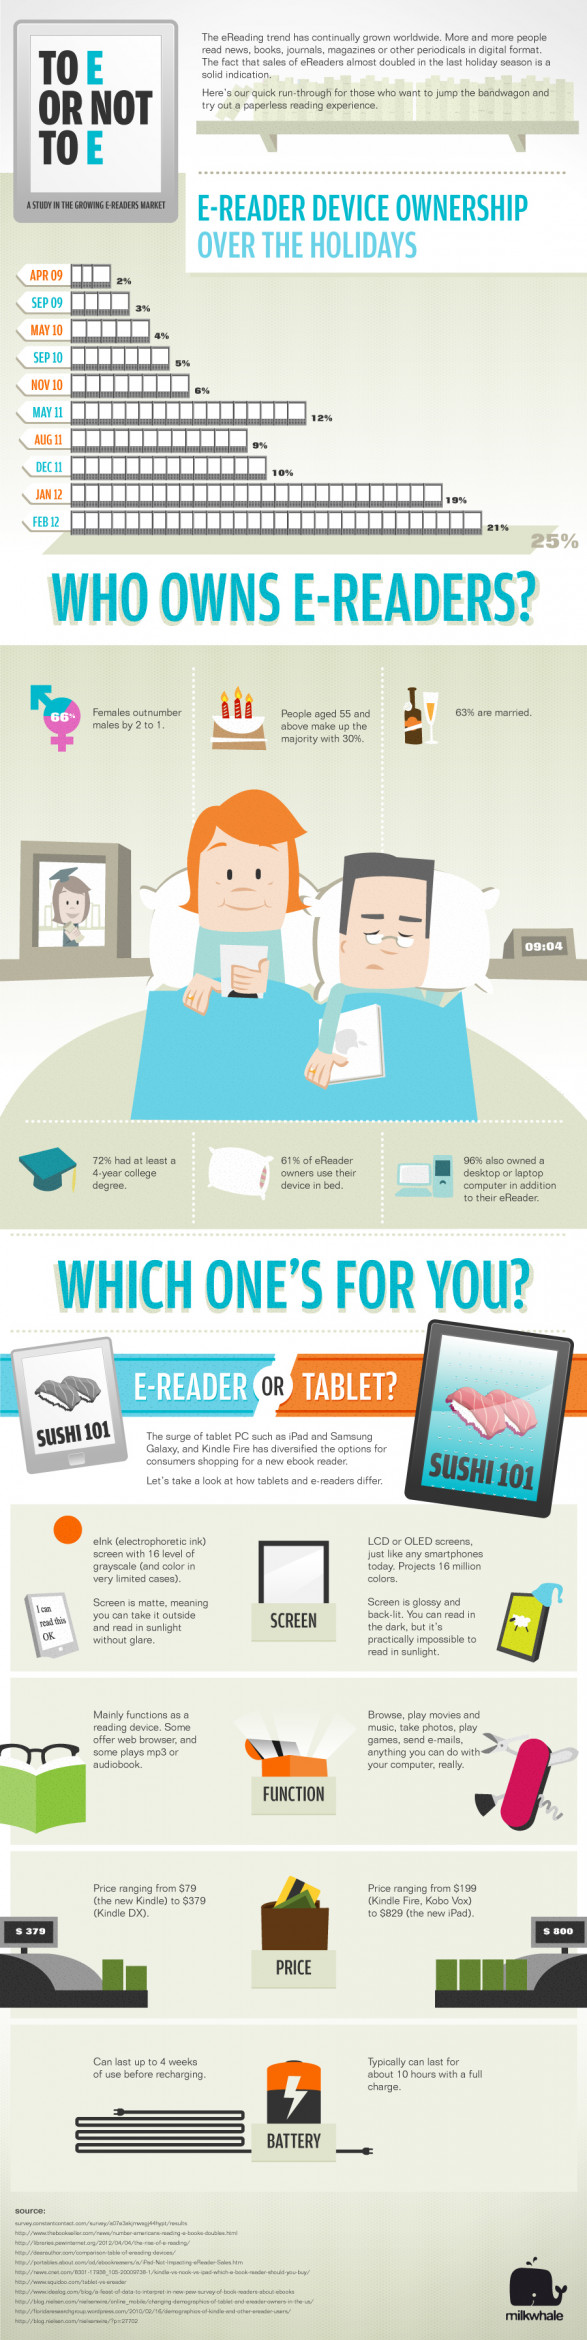 To E or Not to E: A Study in the Growing E-Readers Market